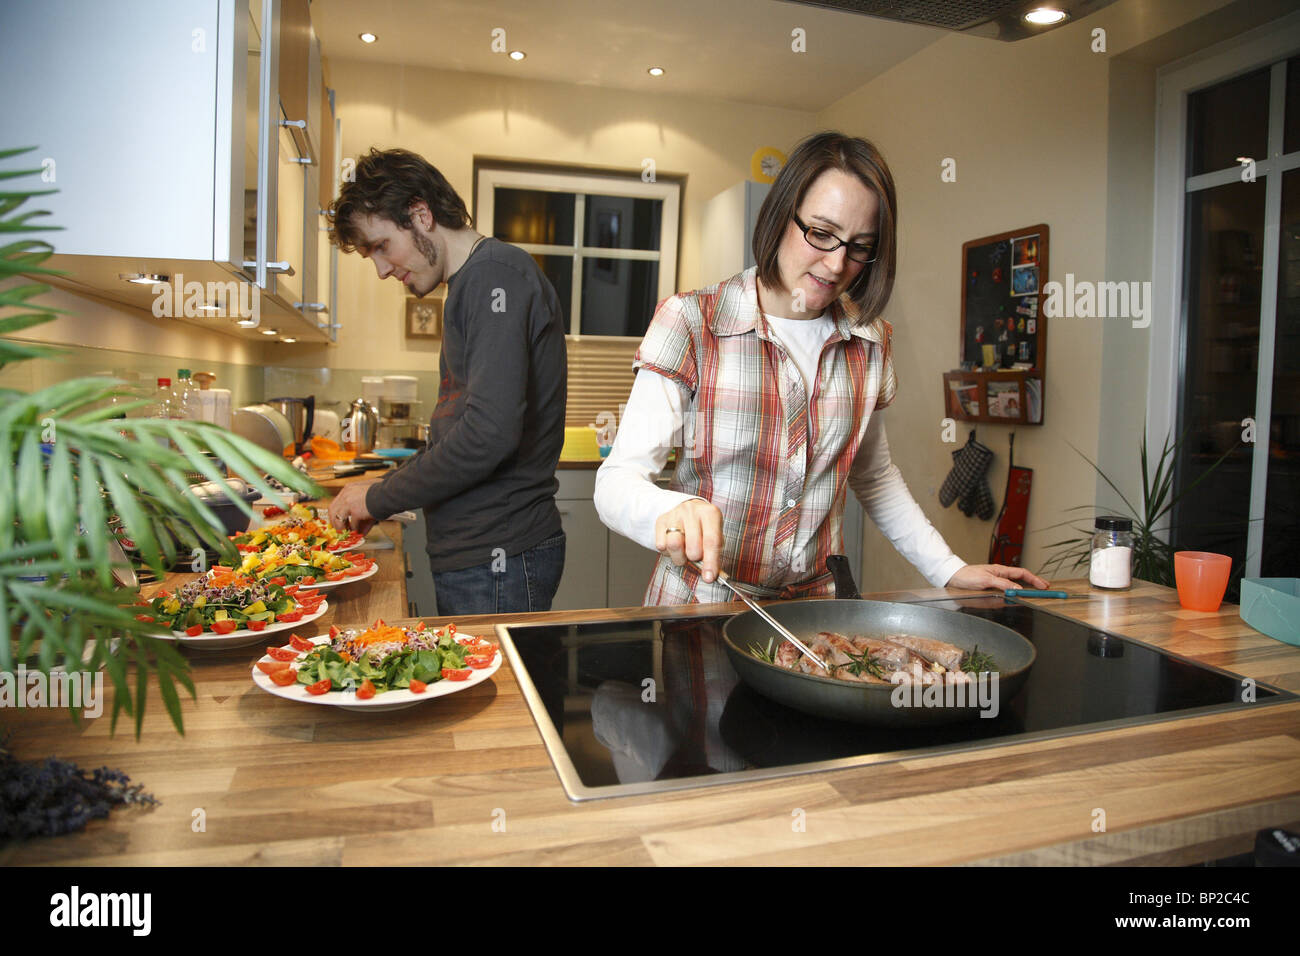 A couple cooking together - Stock Image